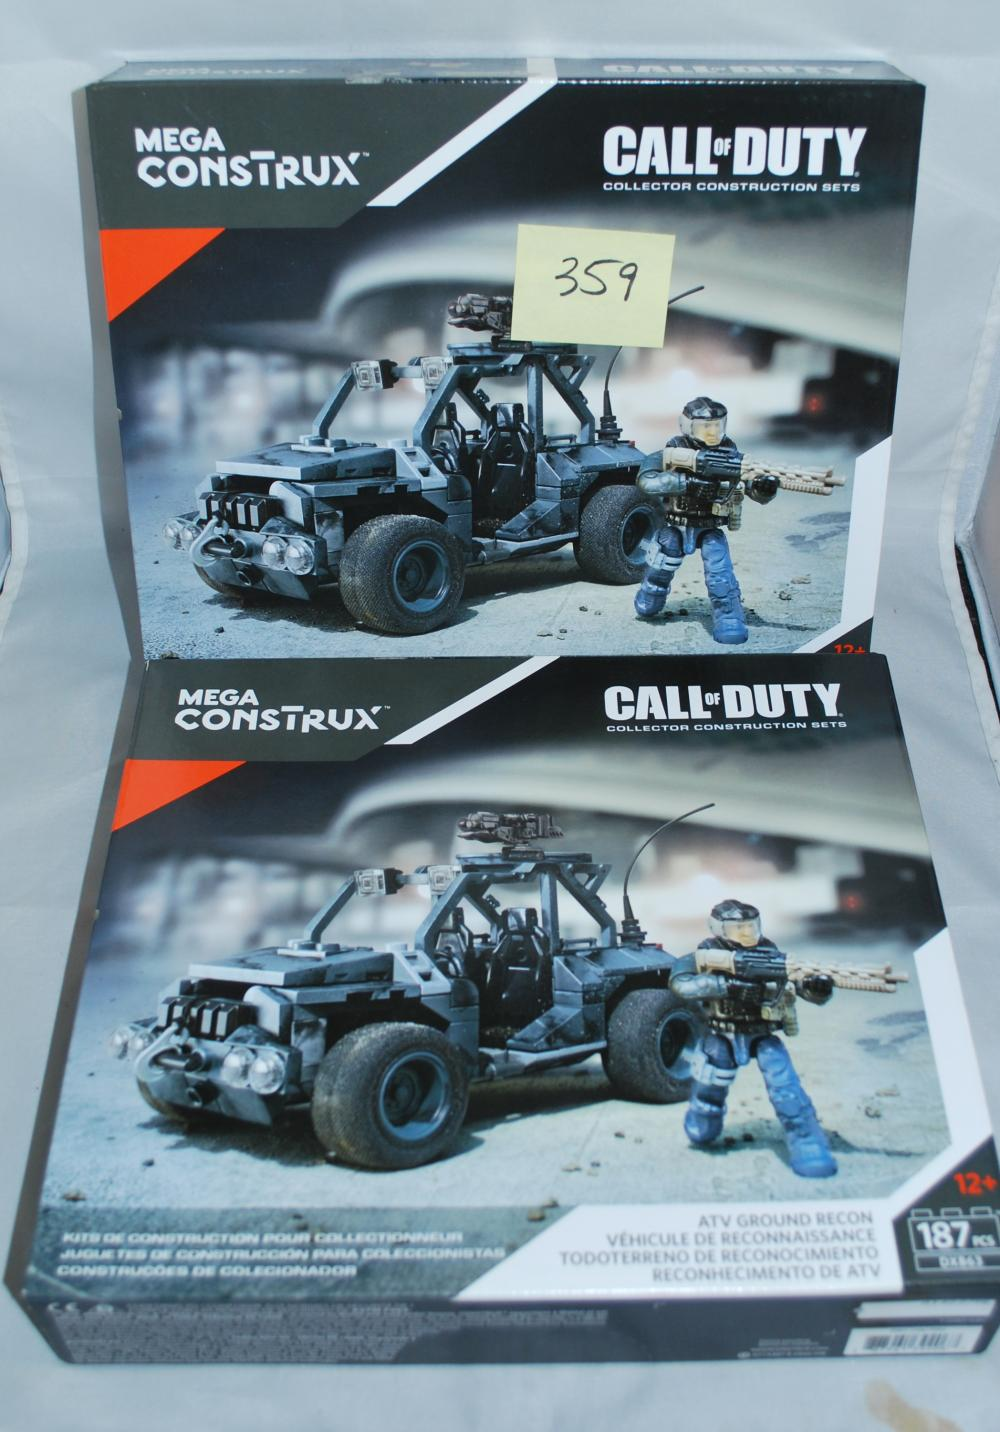 Mega Construx Call of Duty ATV Ground Recon